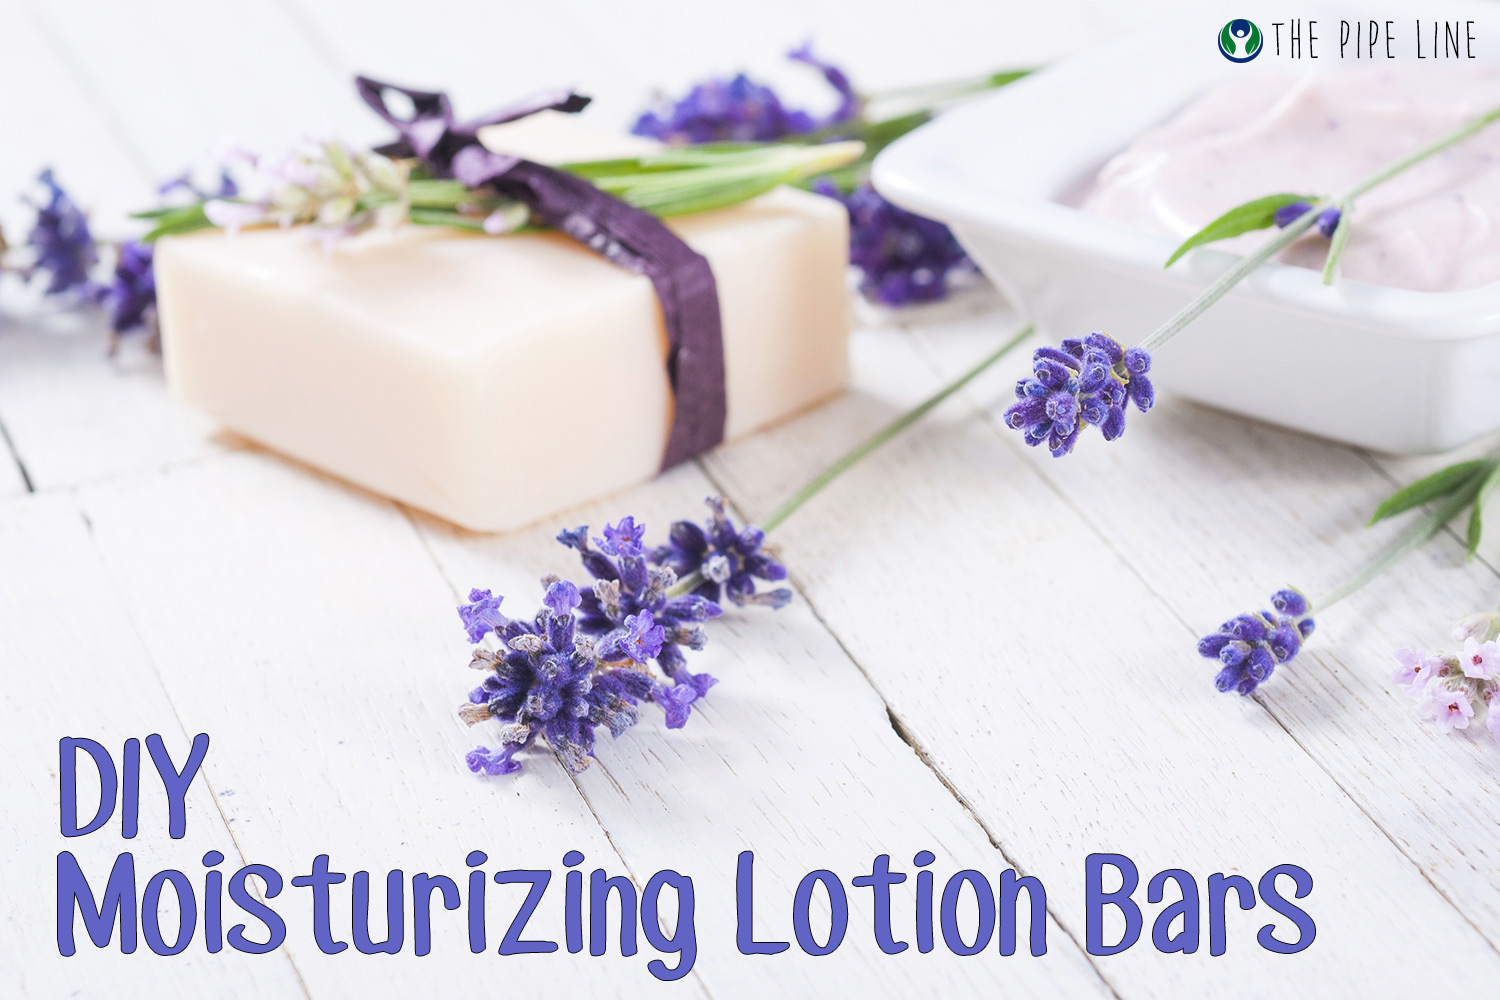 DIY MOISTURIZING LOTION BARS (...